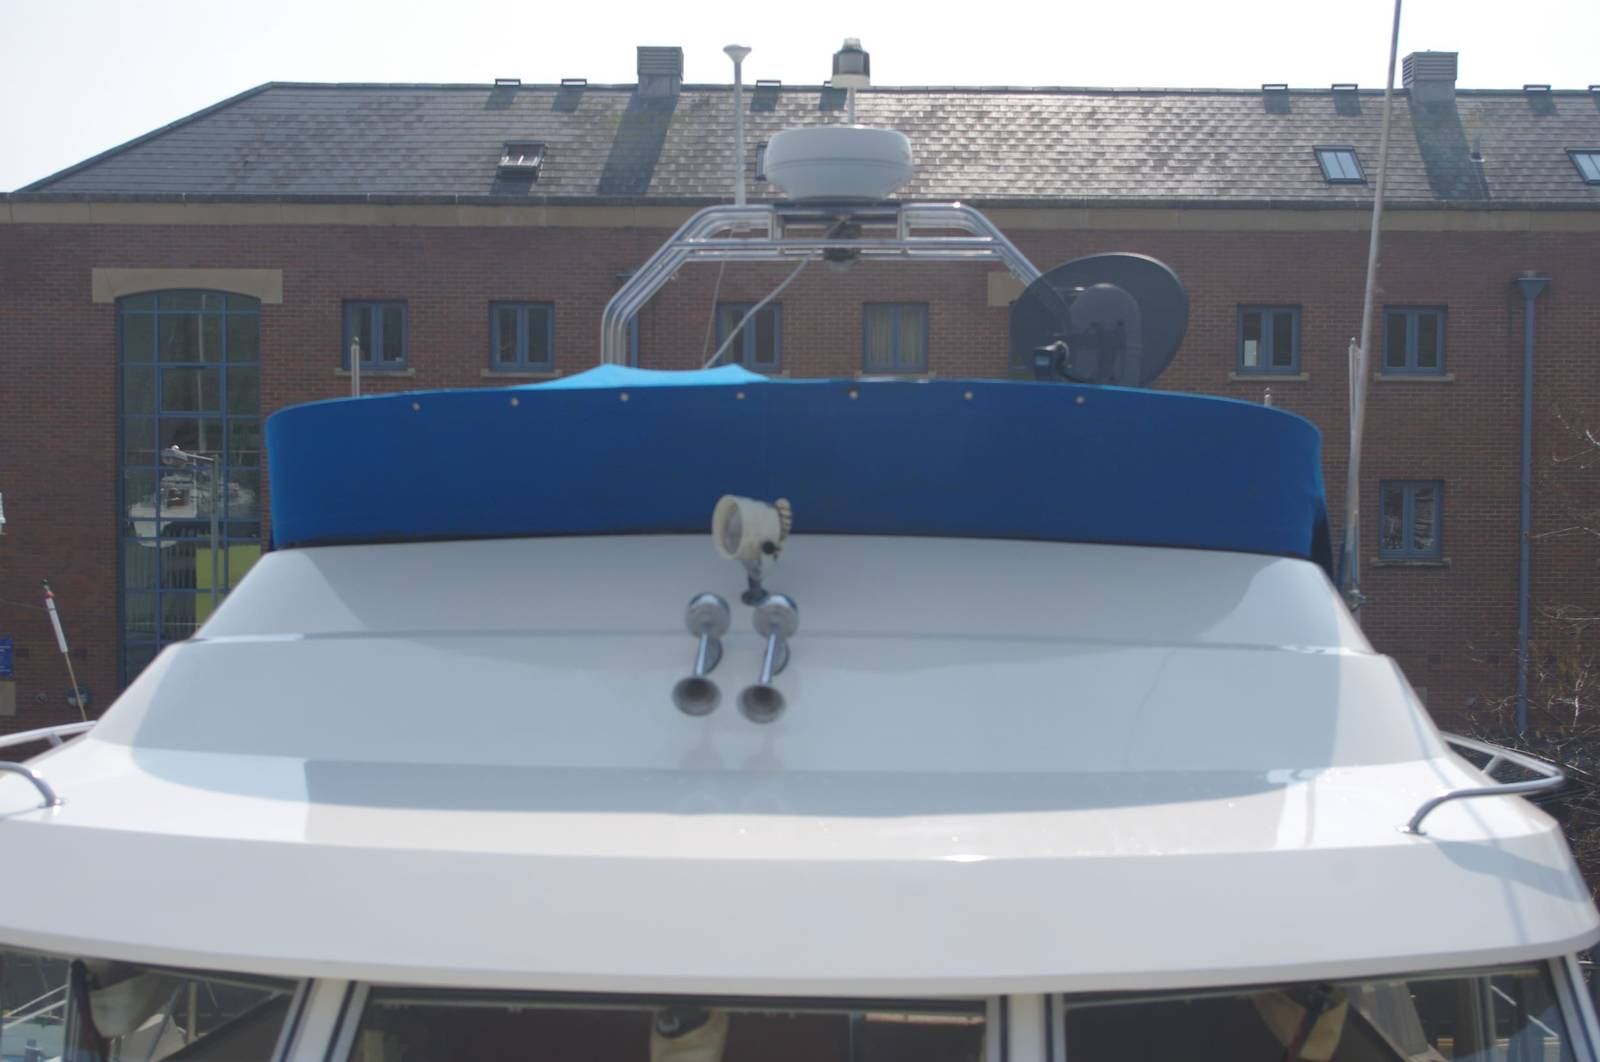 Fairline 36 Turbo (1989) For Sale. Yachts.co Neyland. Call 01646 602 500